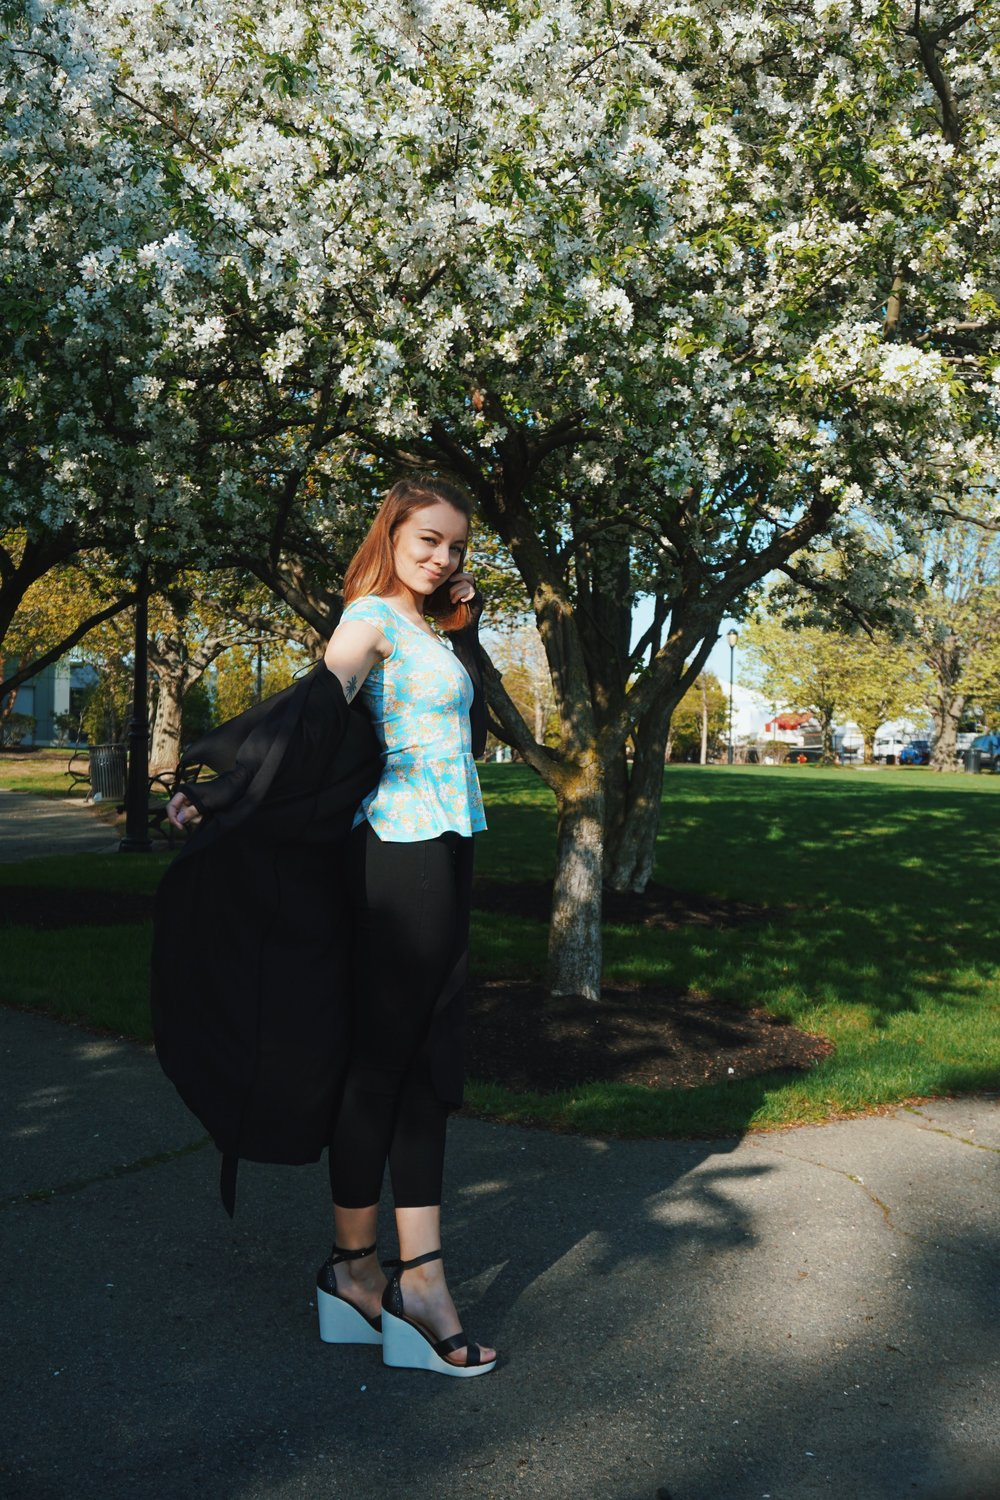 A blogger in a park posing for a shoot, wearing a blue top with white little flowers on it, black duster, black capris, and black and white wedges.